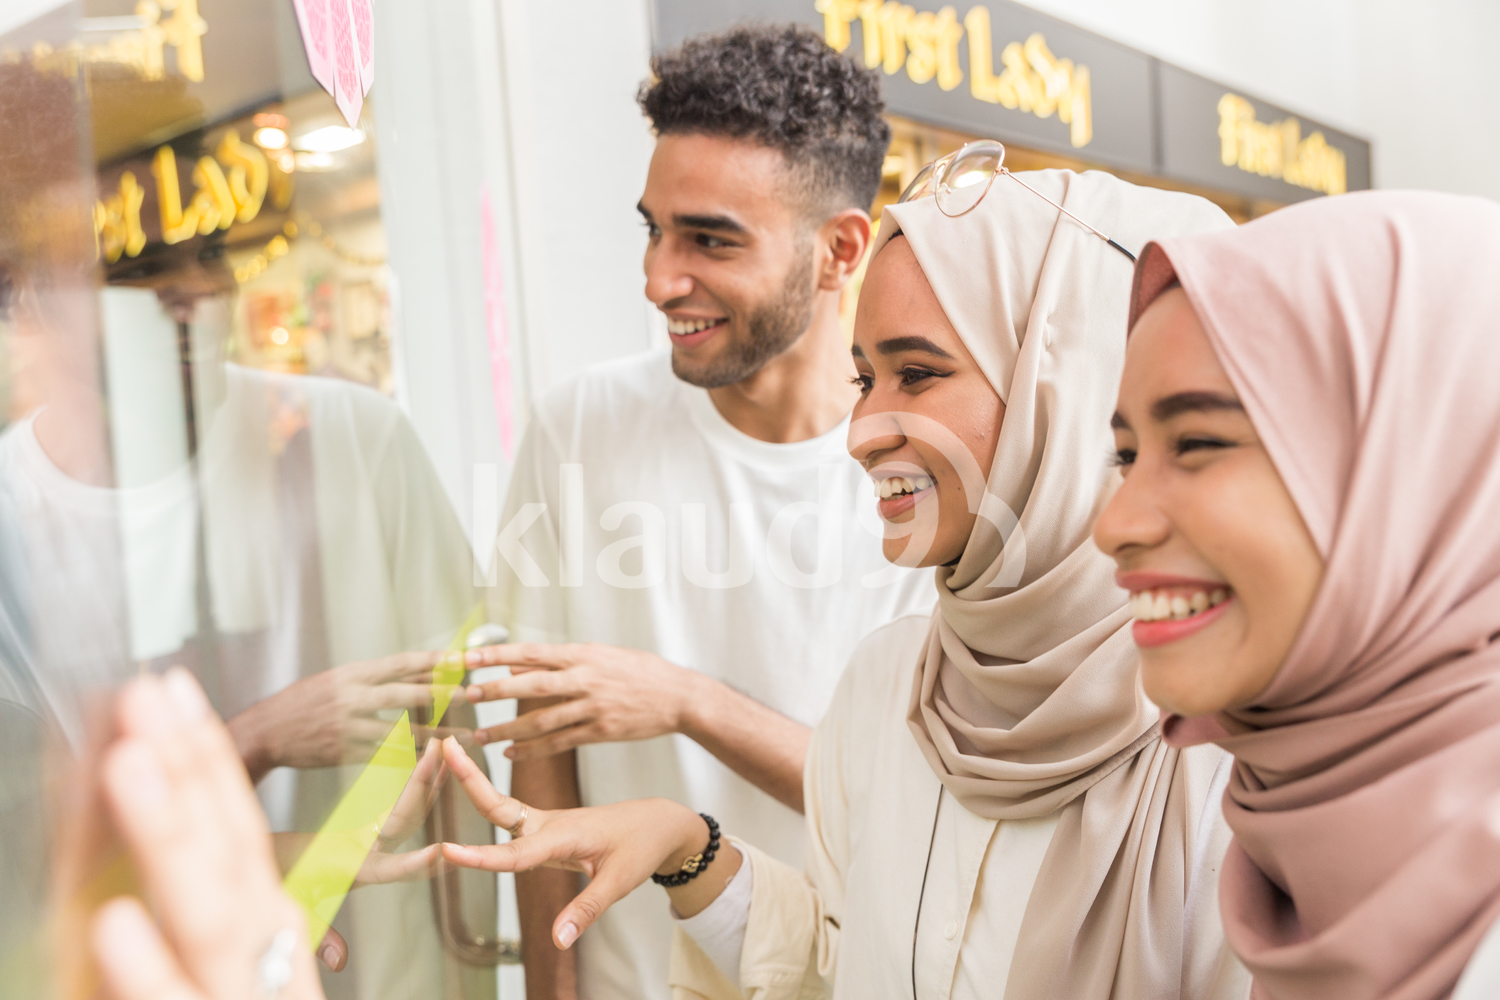 Young muslims looking into window